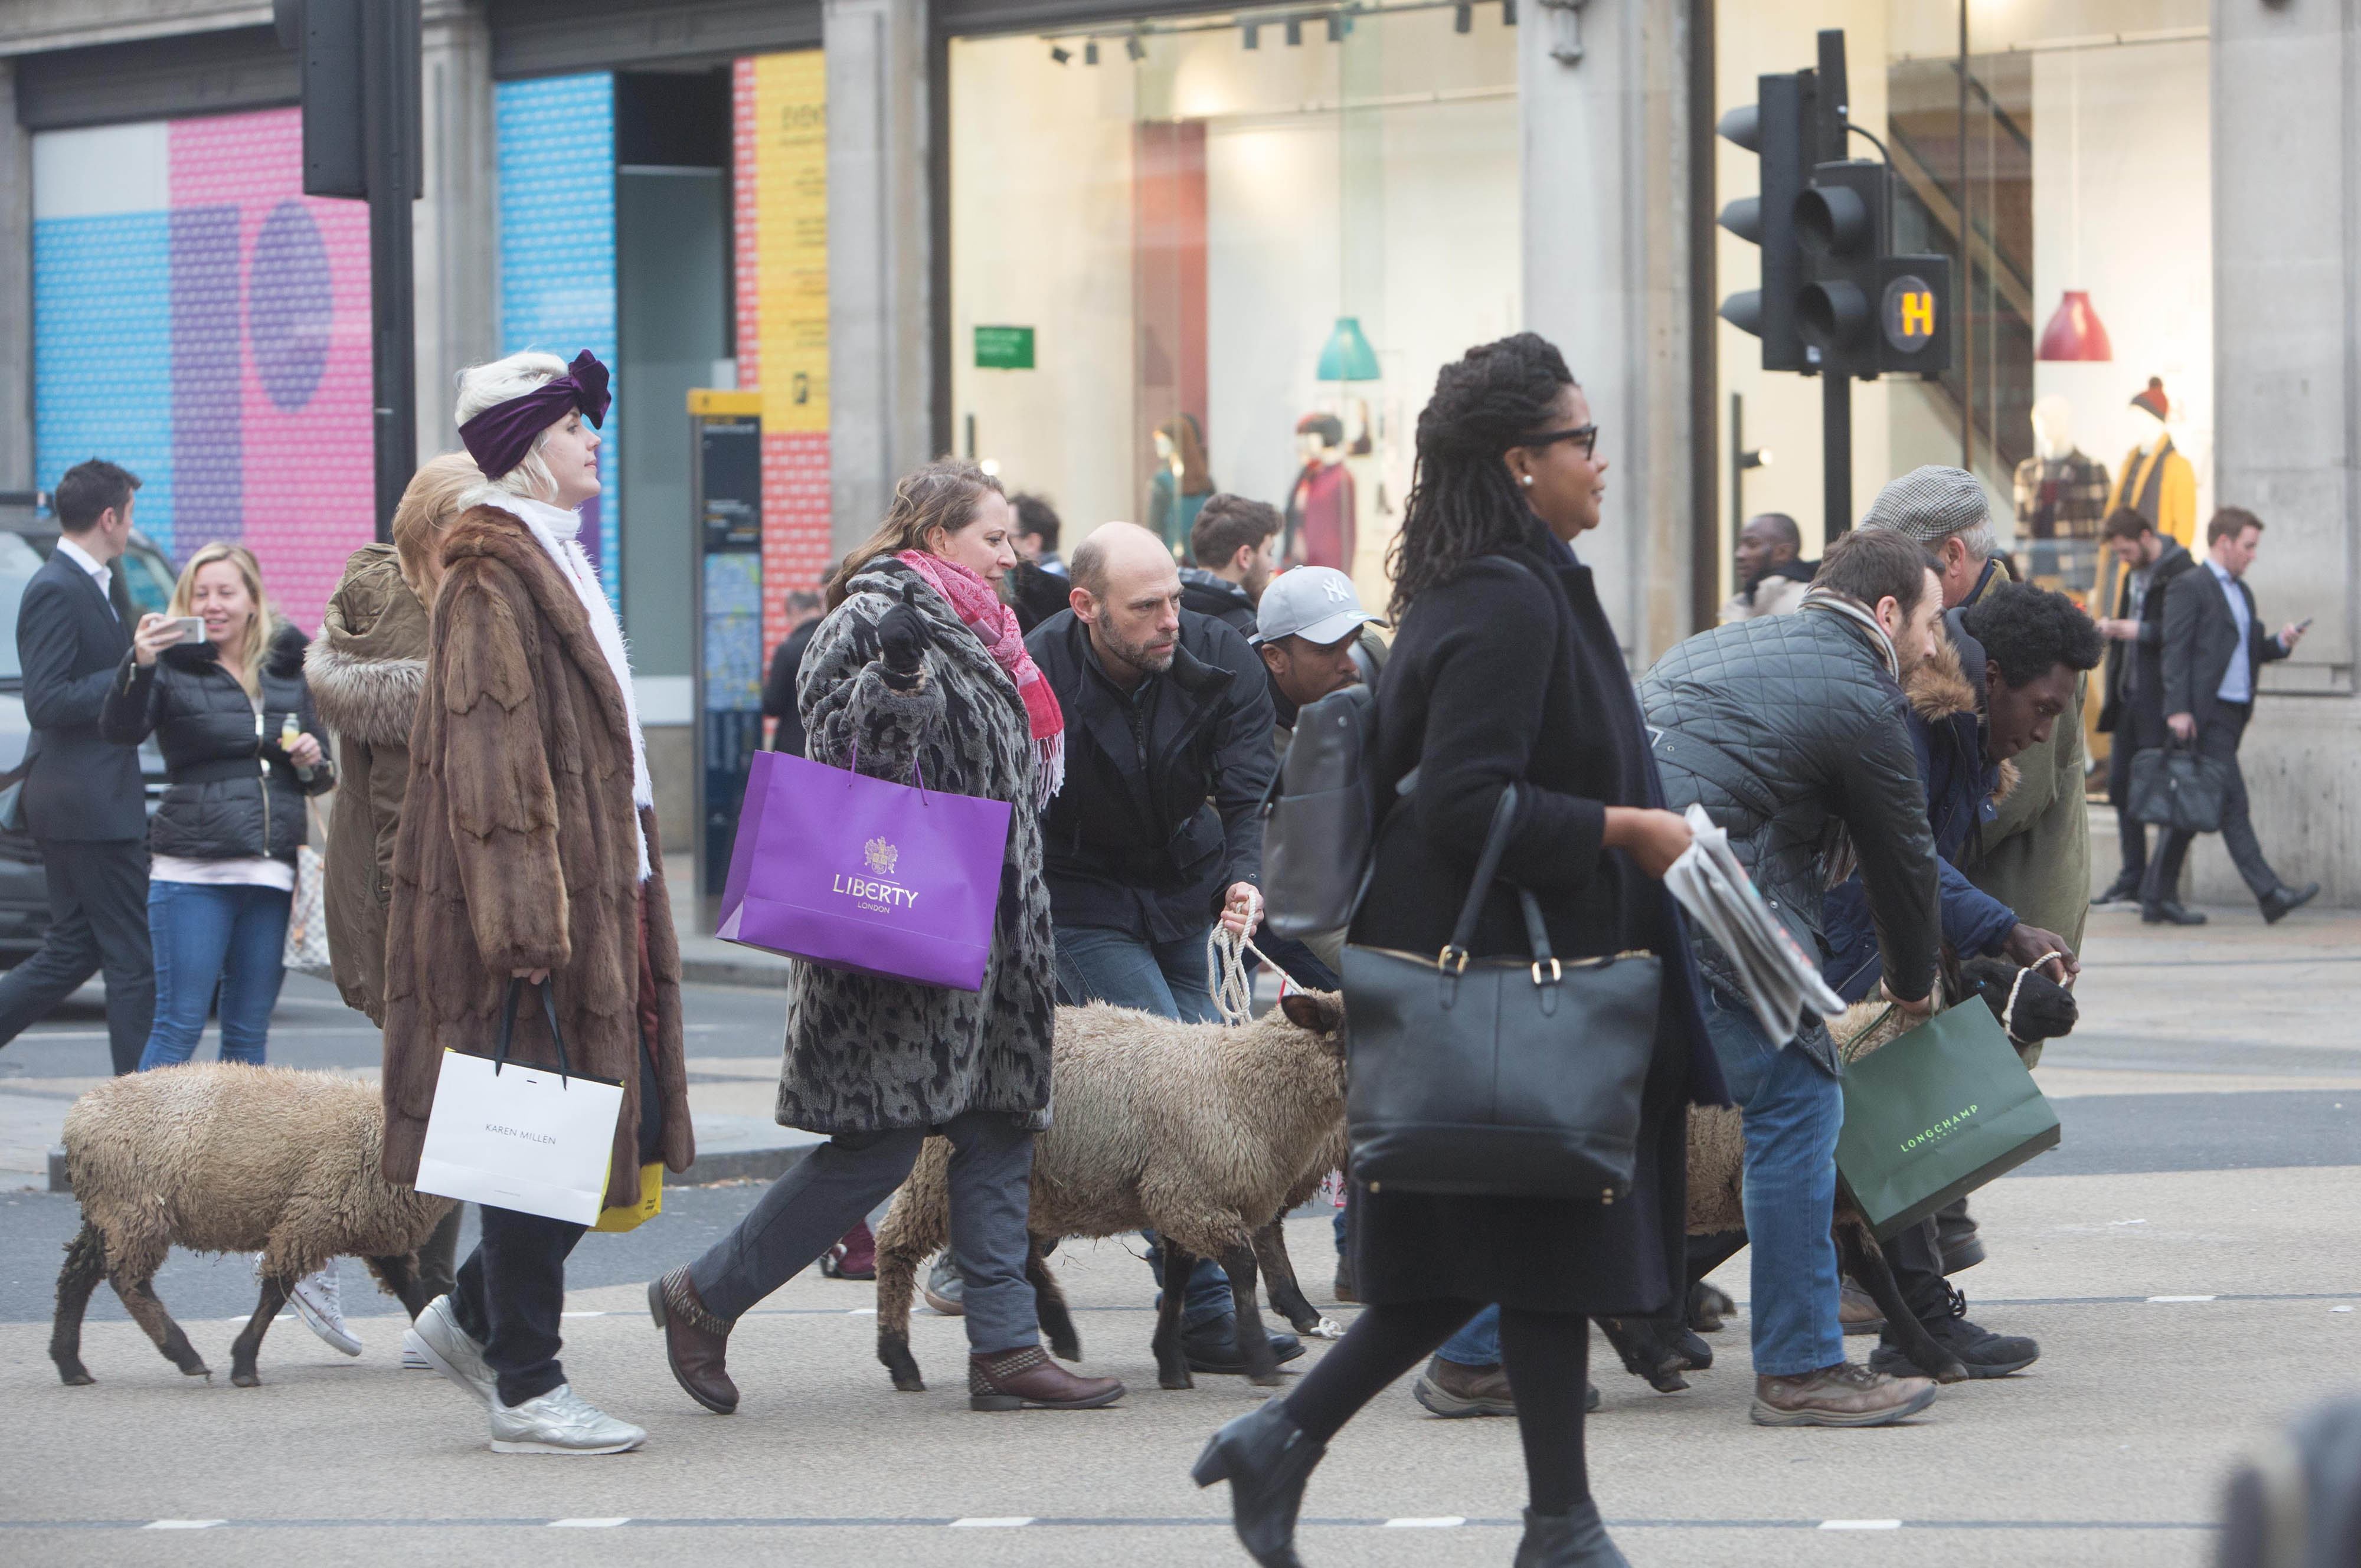 A group of people dressed as shoppers each holding a woolly sheep on a rope cross Oxford St alongside regular commuters.